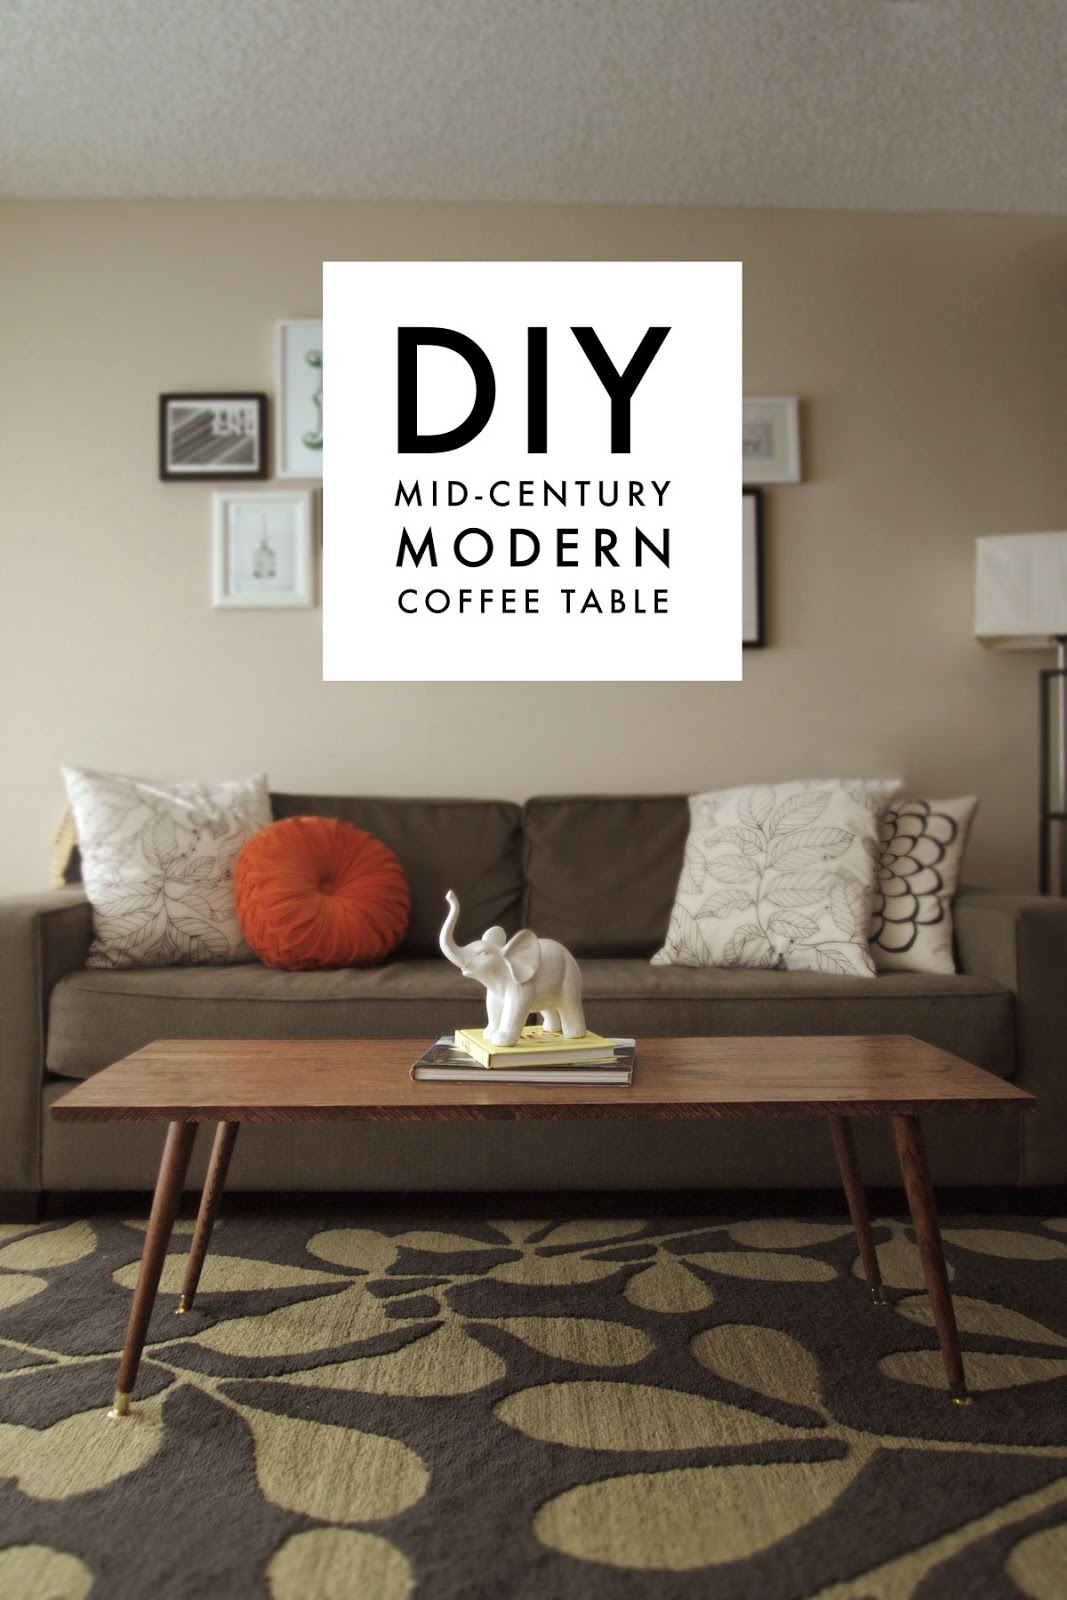 DIY Mid-Century Modern Coffee Table - A Pair of Pears